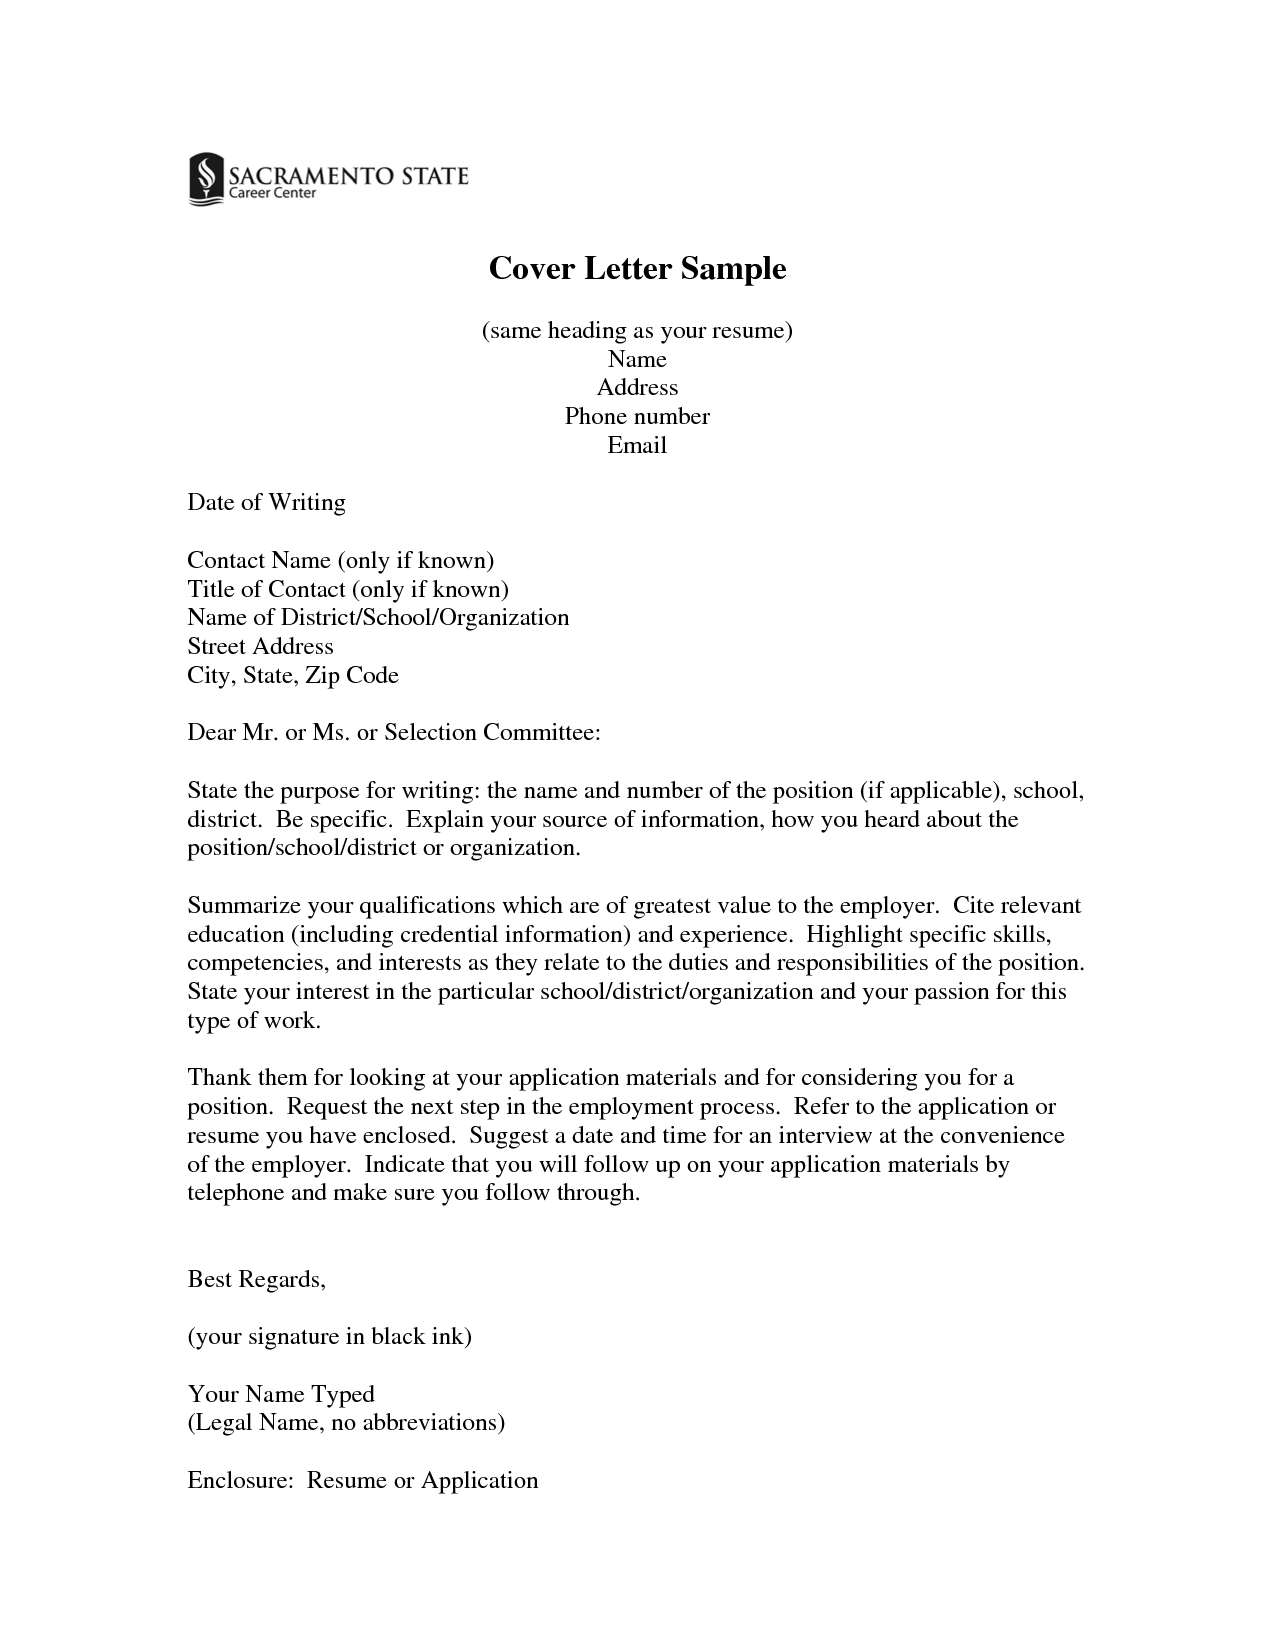 Same cover letters for resume cover letter sample same for Cover letter no address of employer